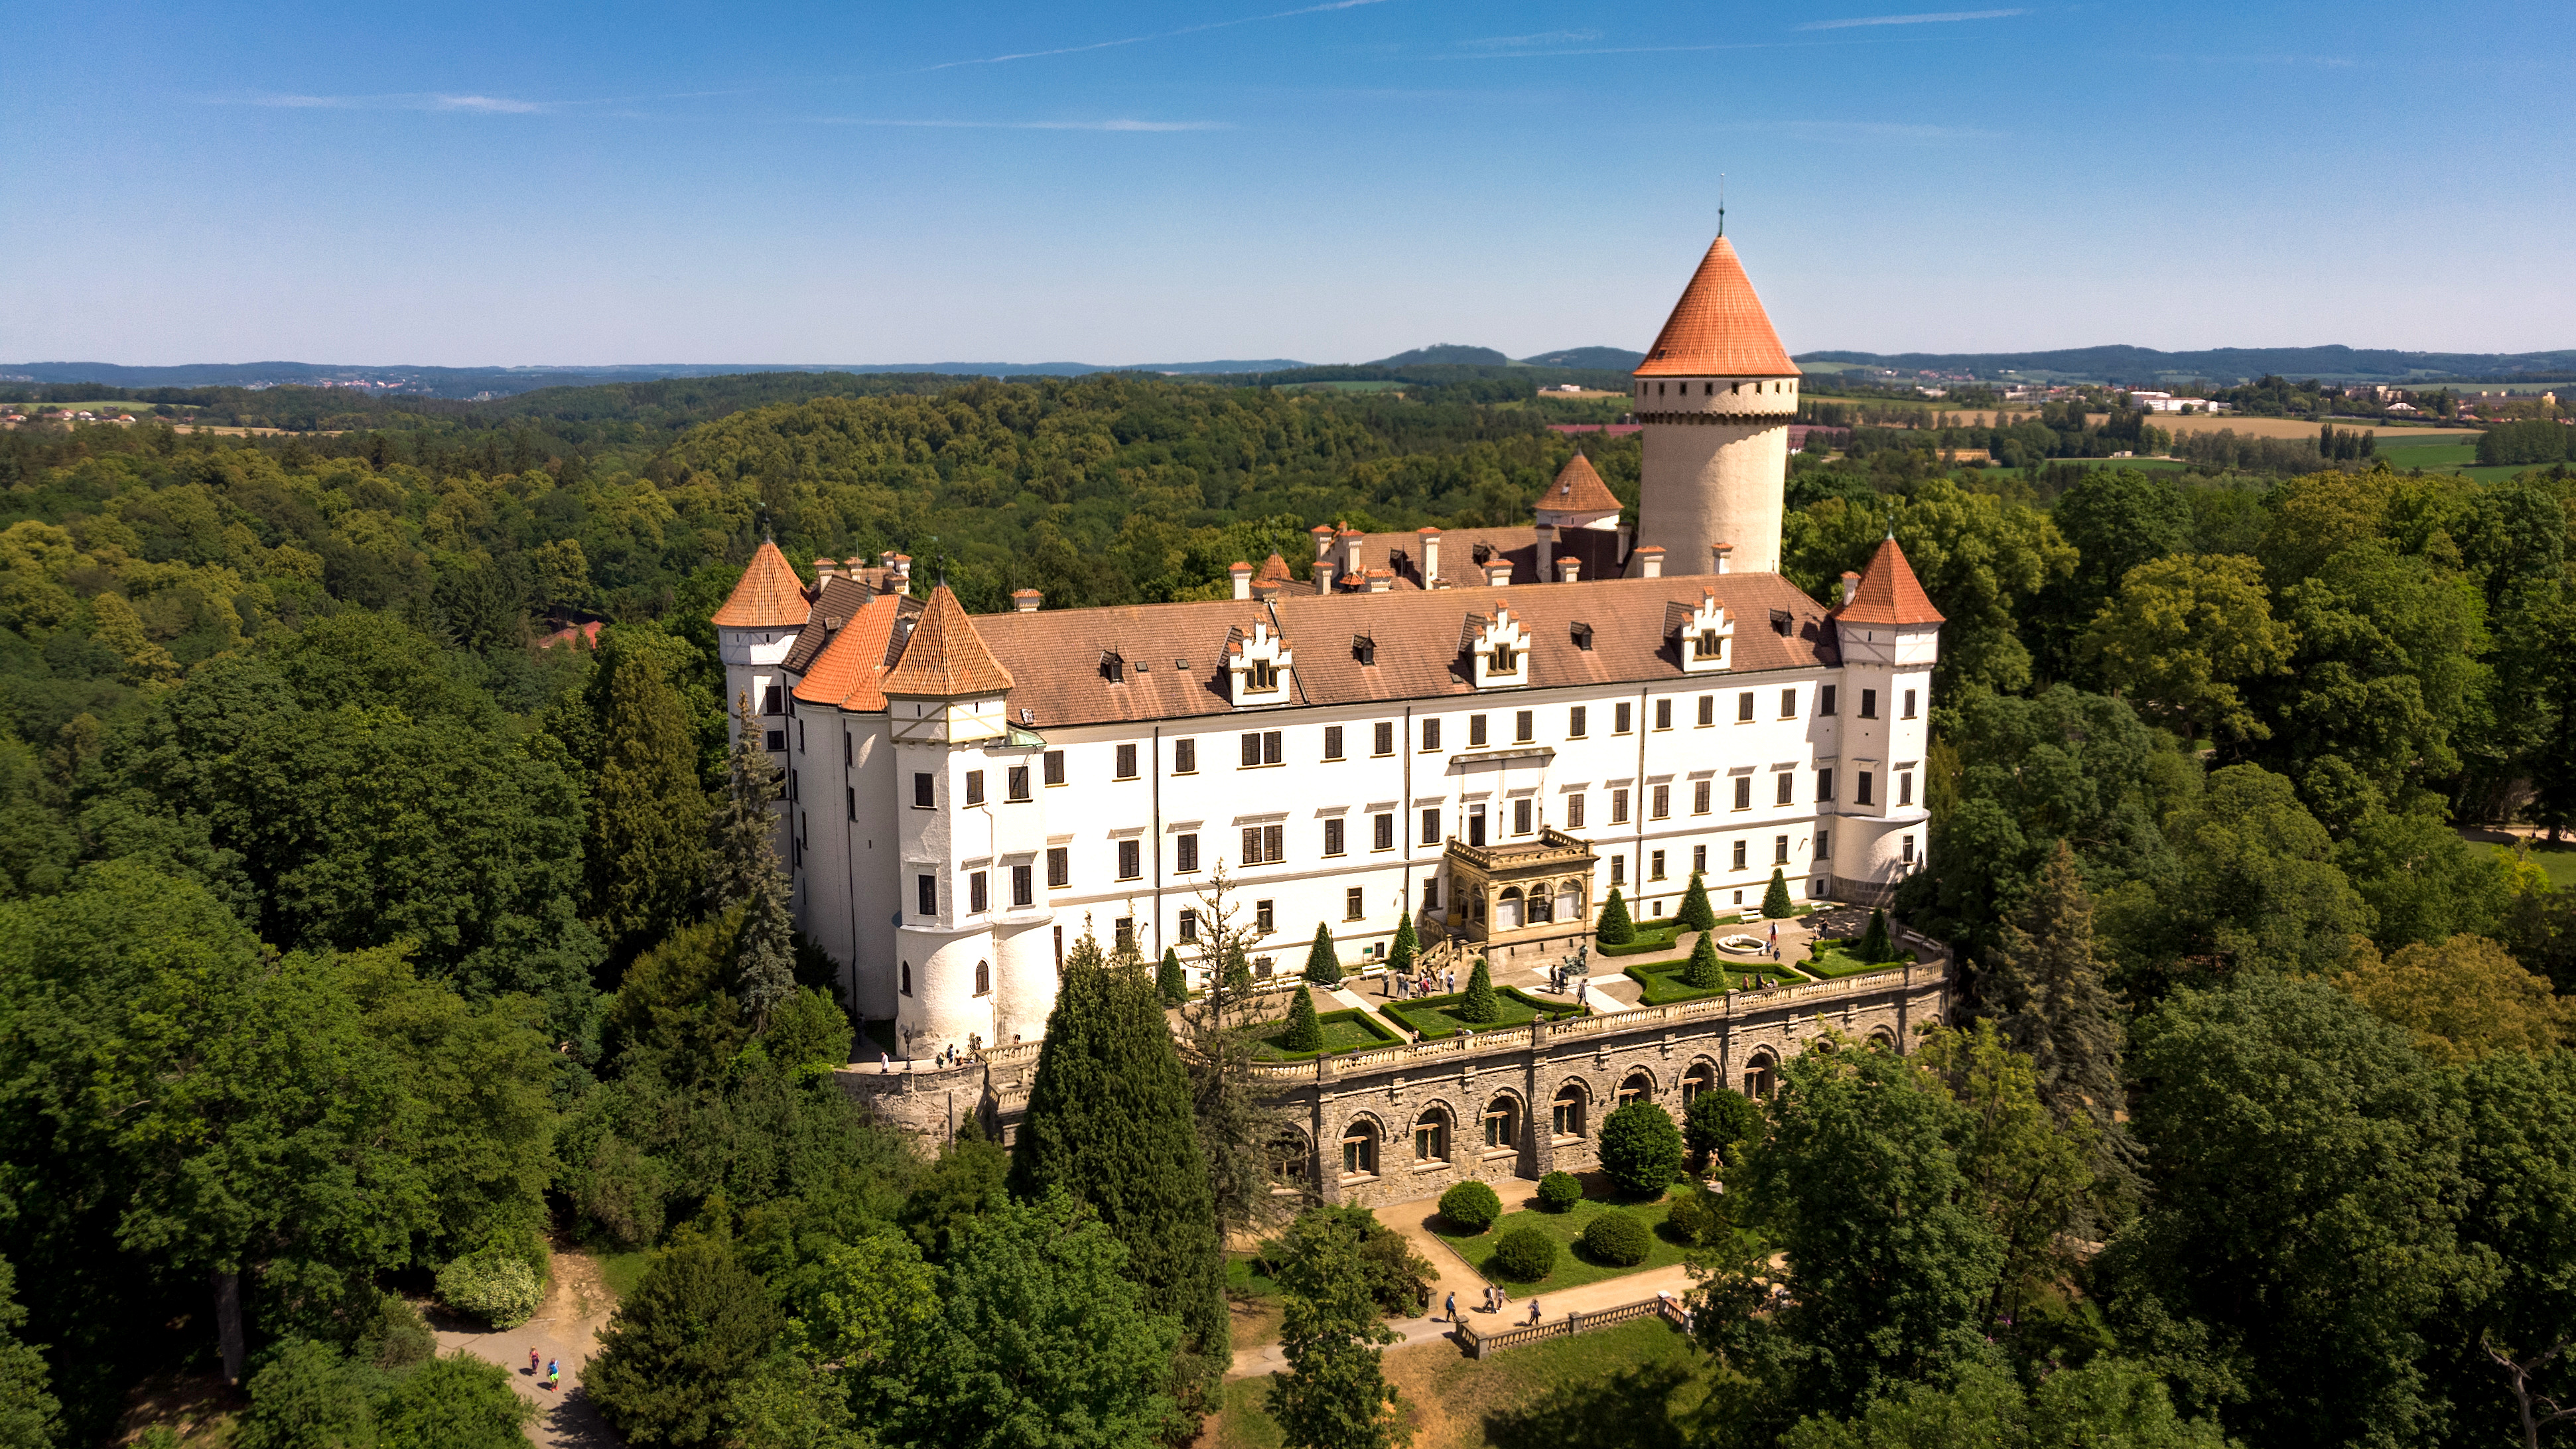 Konopiste Chateu, castle, daytrip from prague, czech republic, hidden gem, private trip, english speaking local